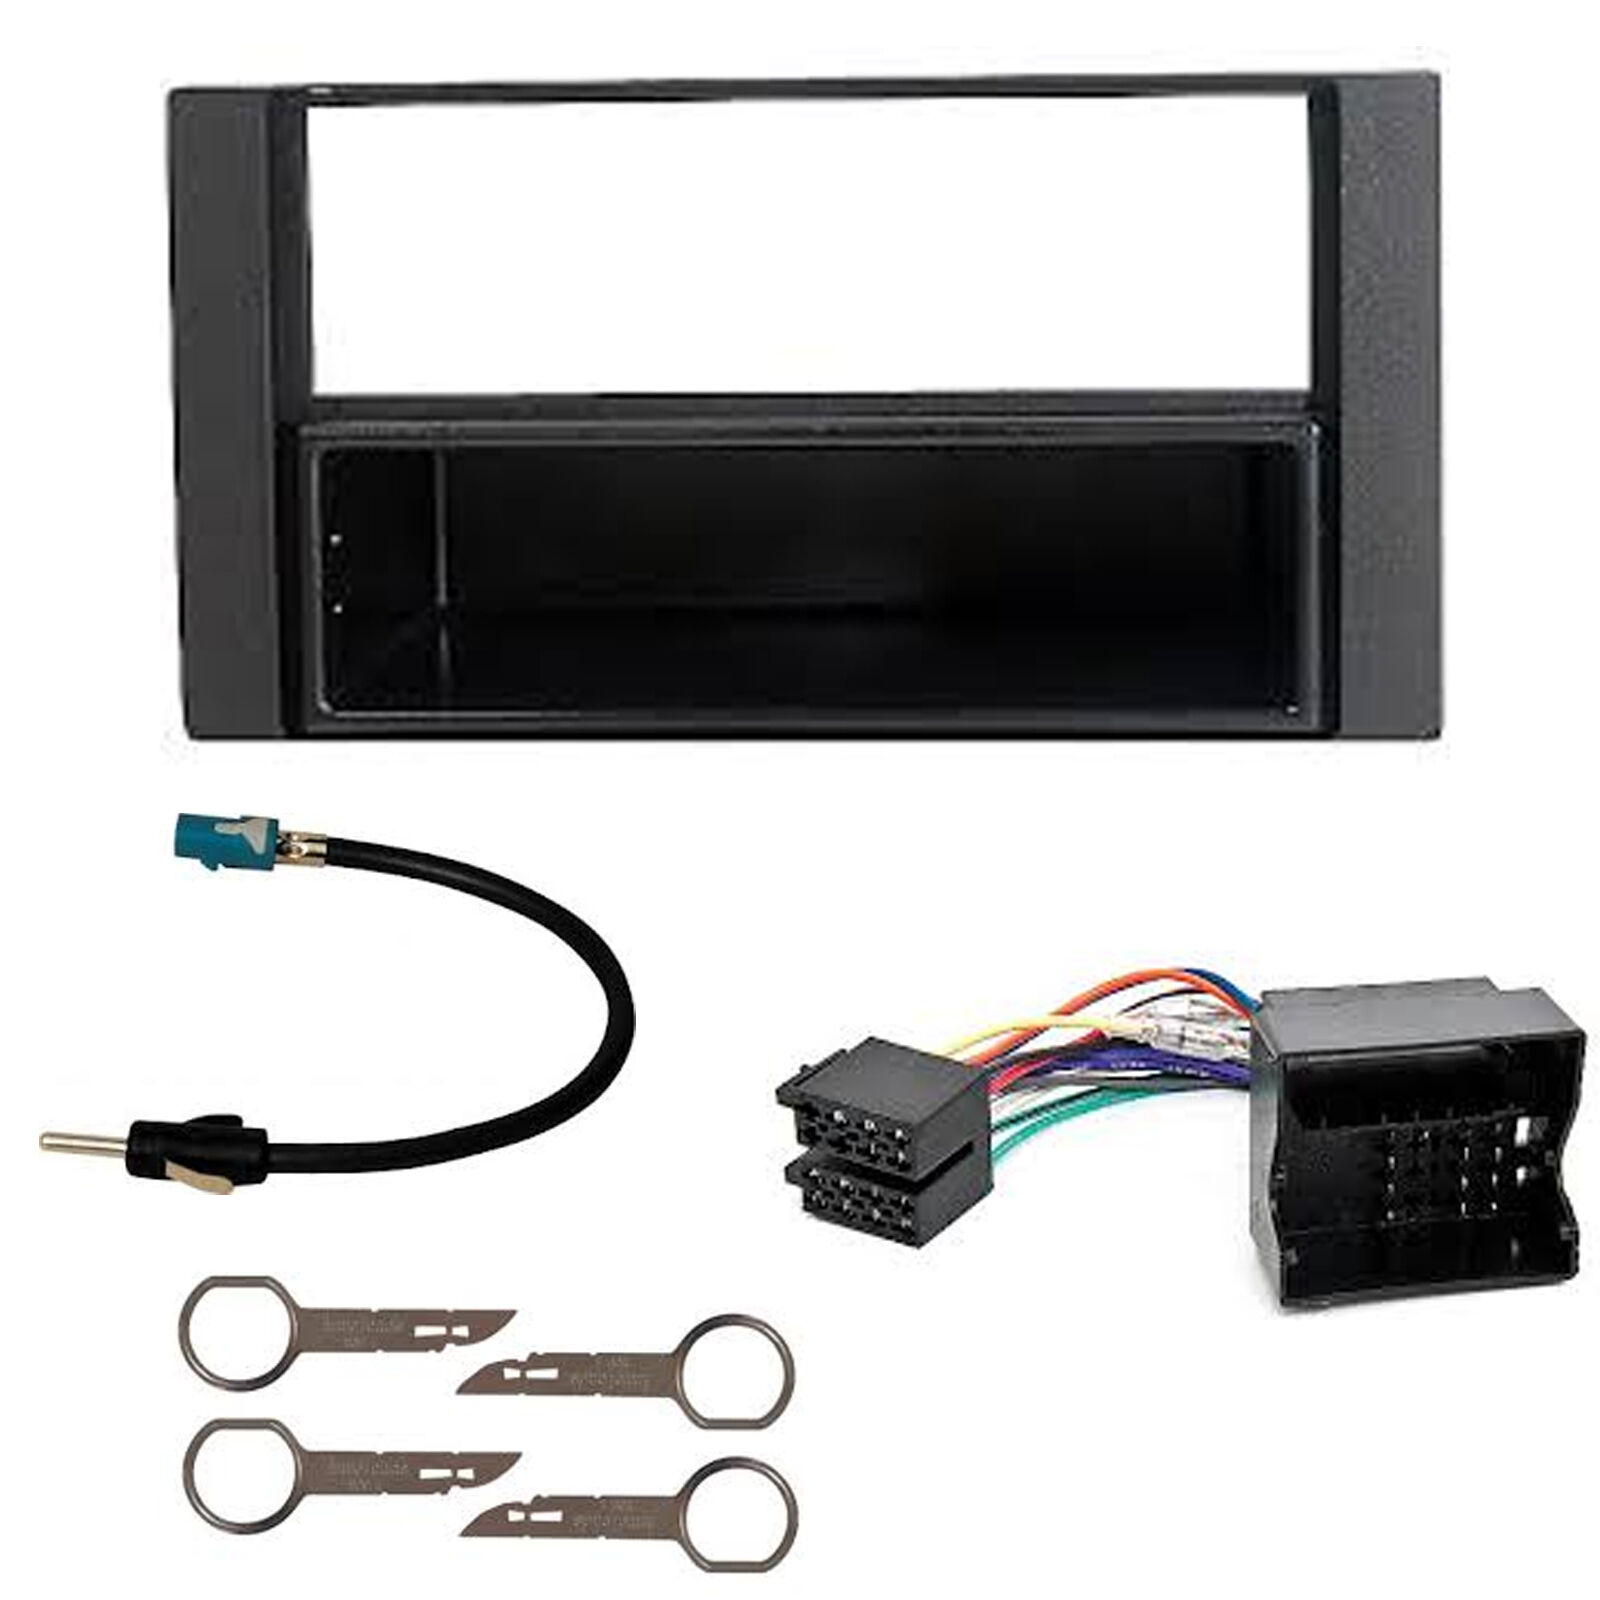 FORD FIESTA 2001 TO 2008 BLACK SINGLE or DOUBLE DIN FITTING KIT ADAPTOR FASCIA